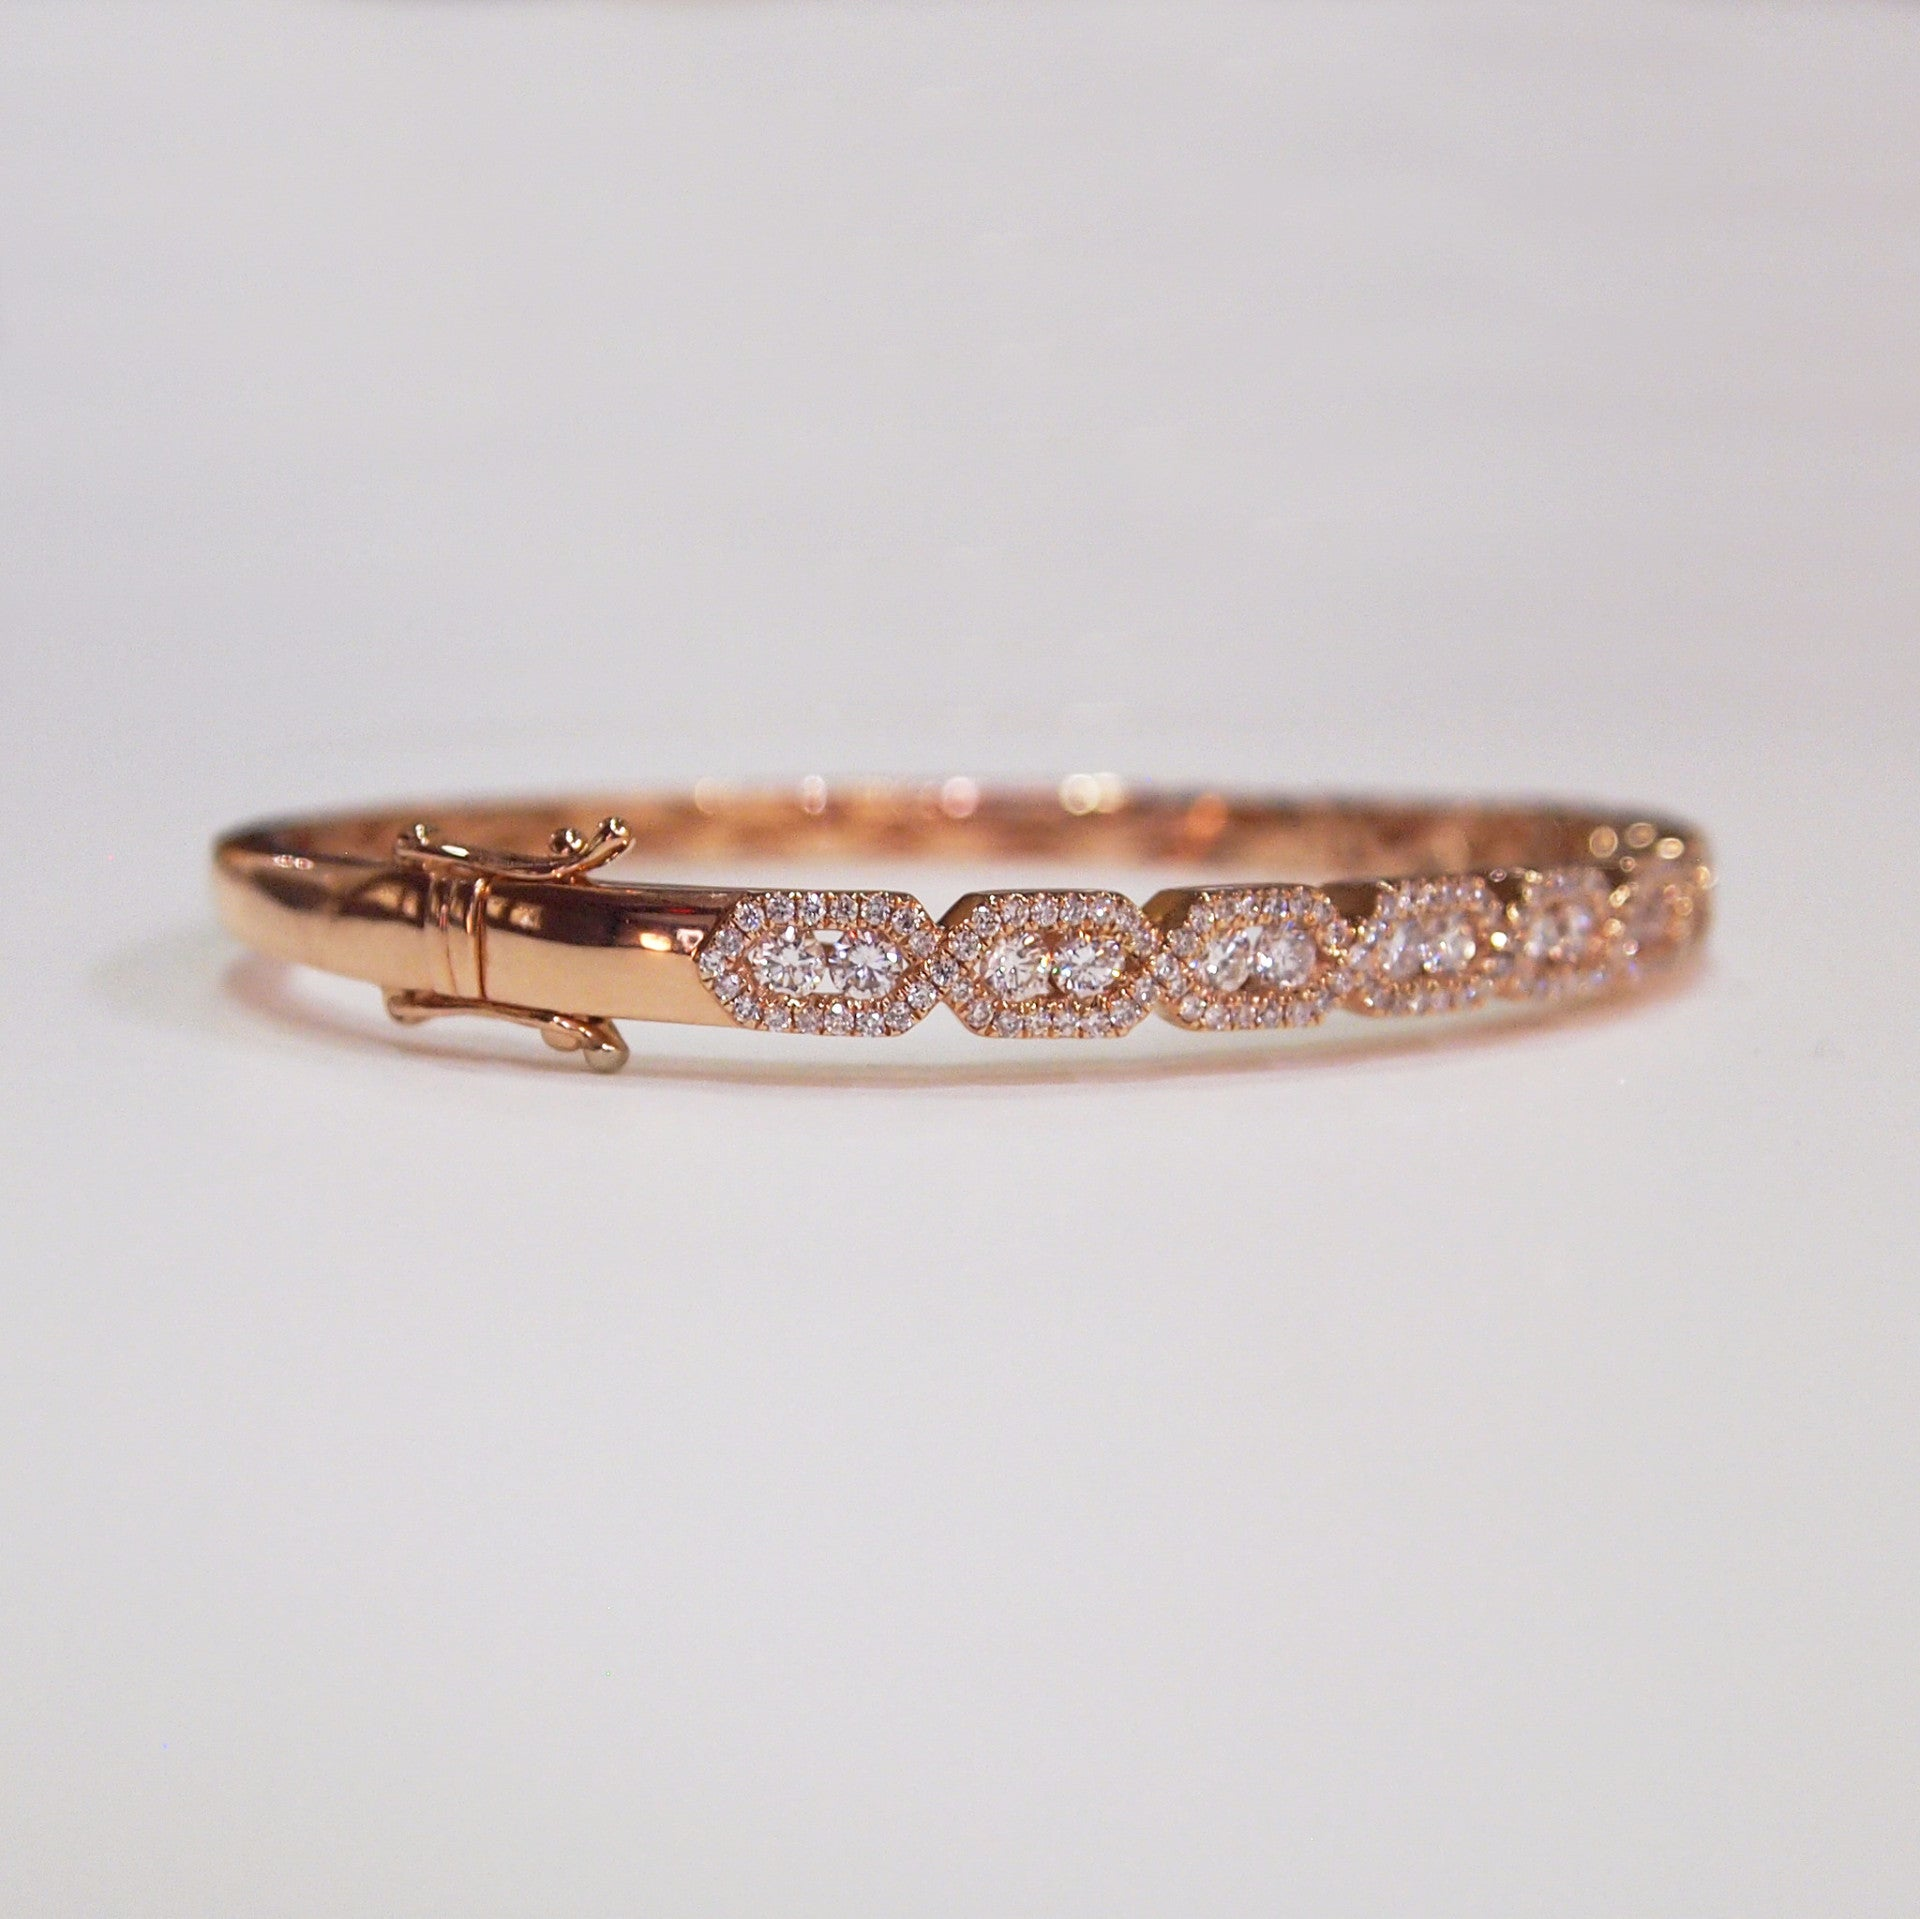 14K rose gold and diamond bangle bracelet with brilliant-cut diamonds